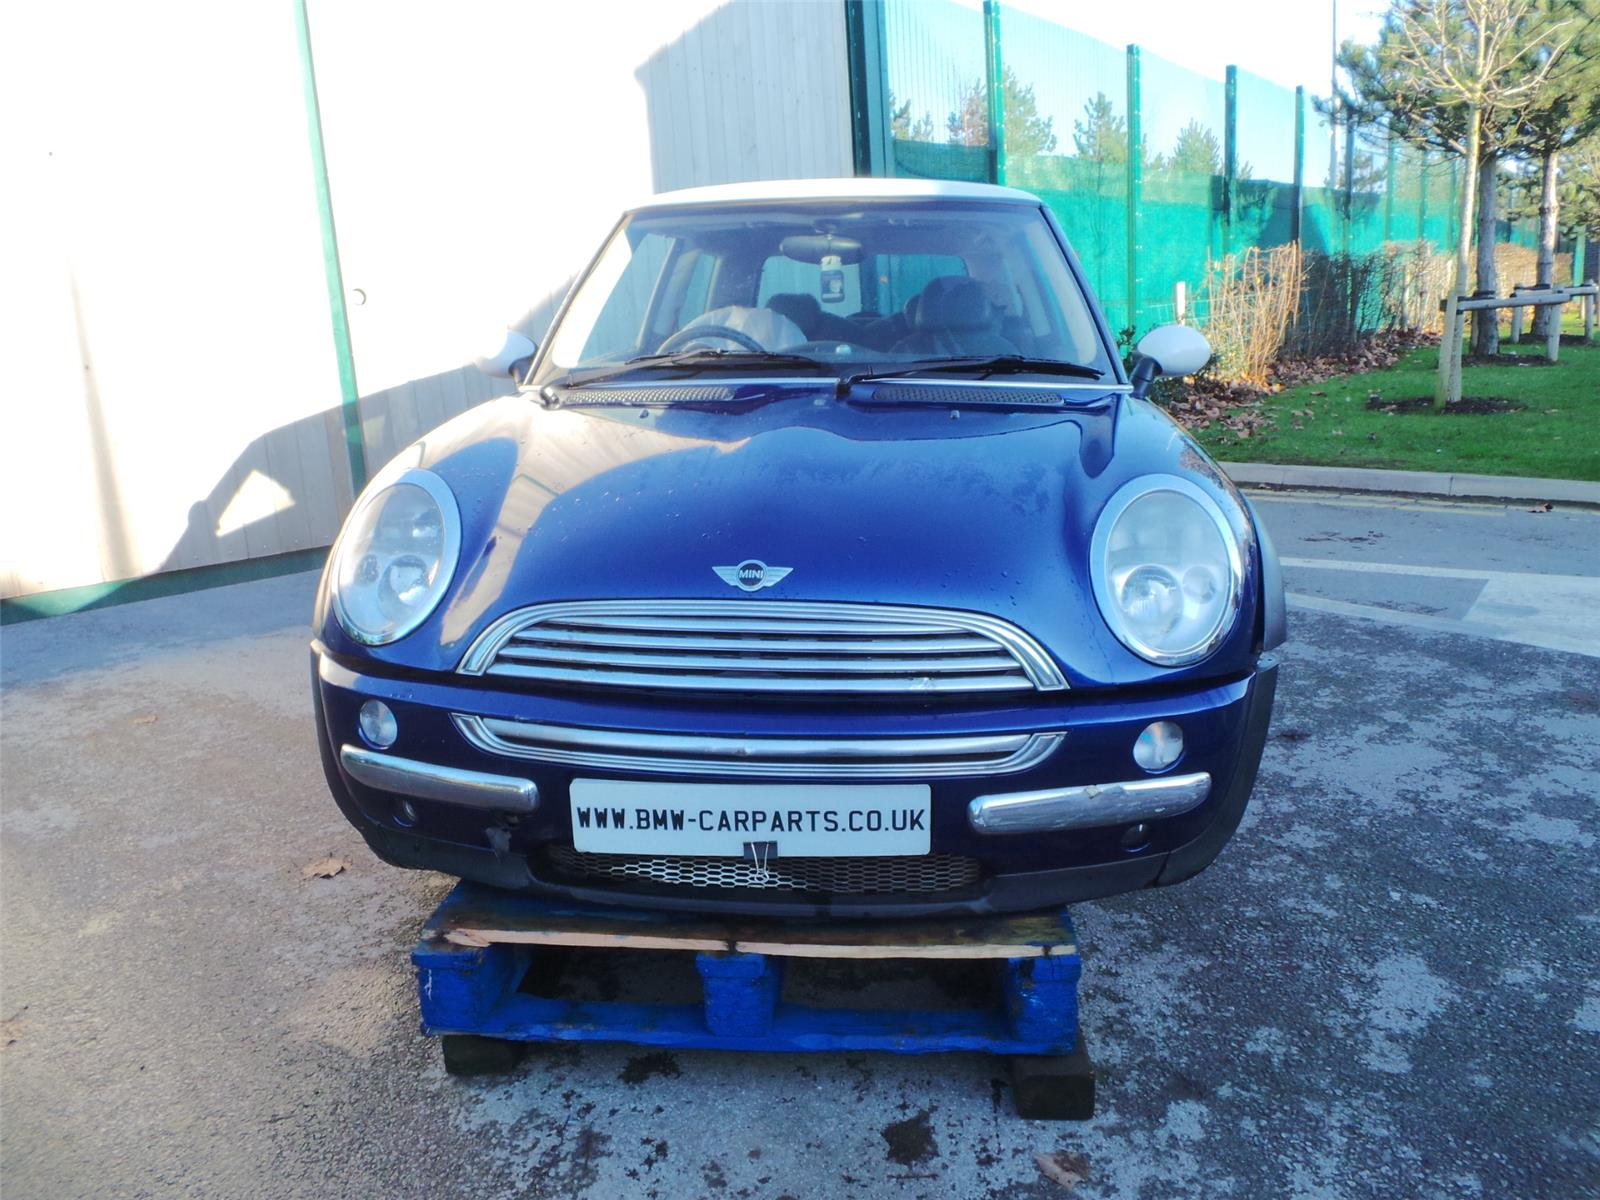 2002 mini r50 cooper 3 door hatchback petrol manual breaking for used and spare parts from. Black Bedroom Furniture Sets. Home Design Ideas